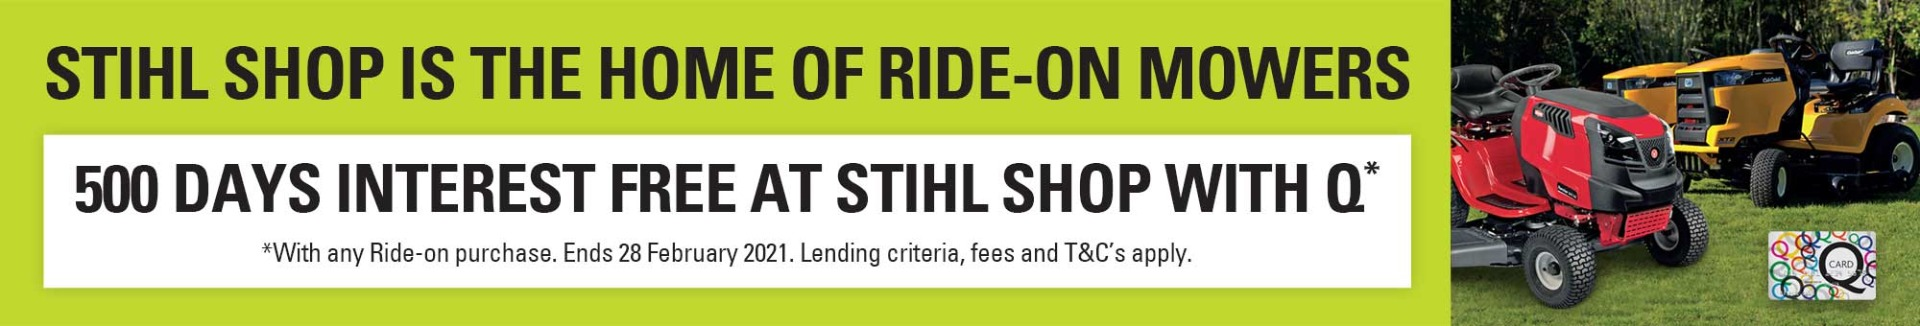 500 Days Interest Free on Ride-on Mowers with STIHL SHOP